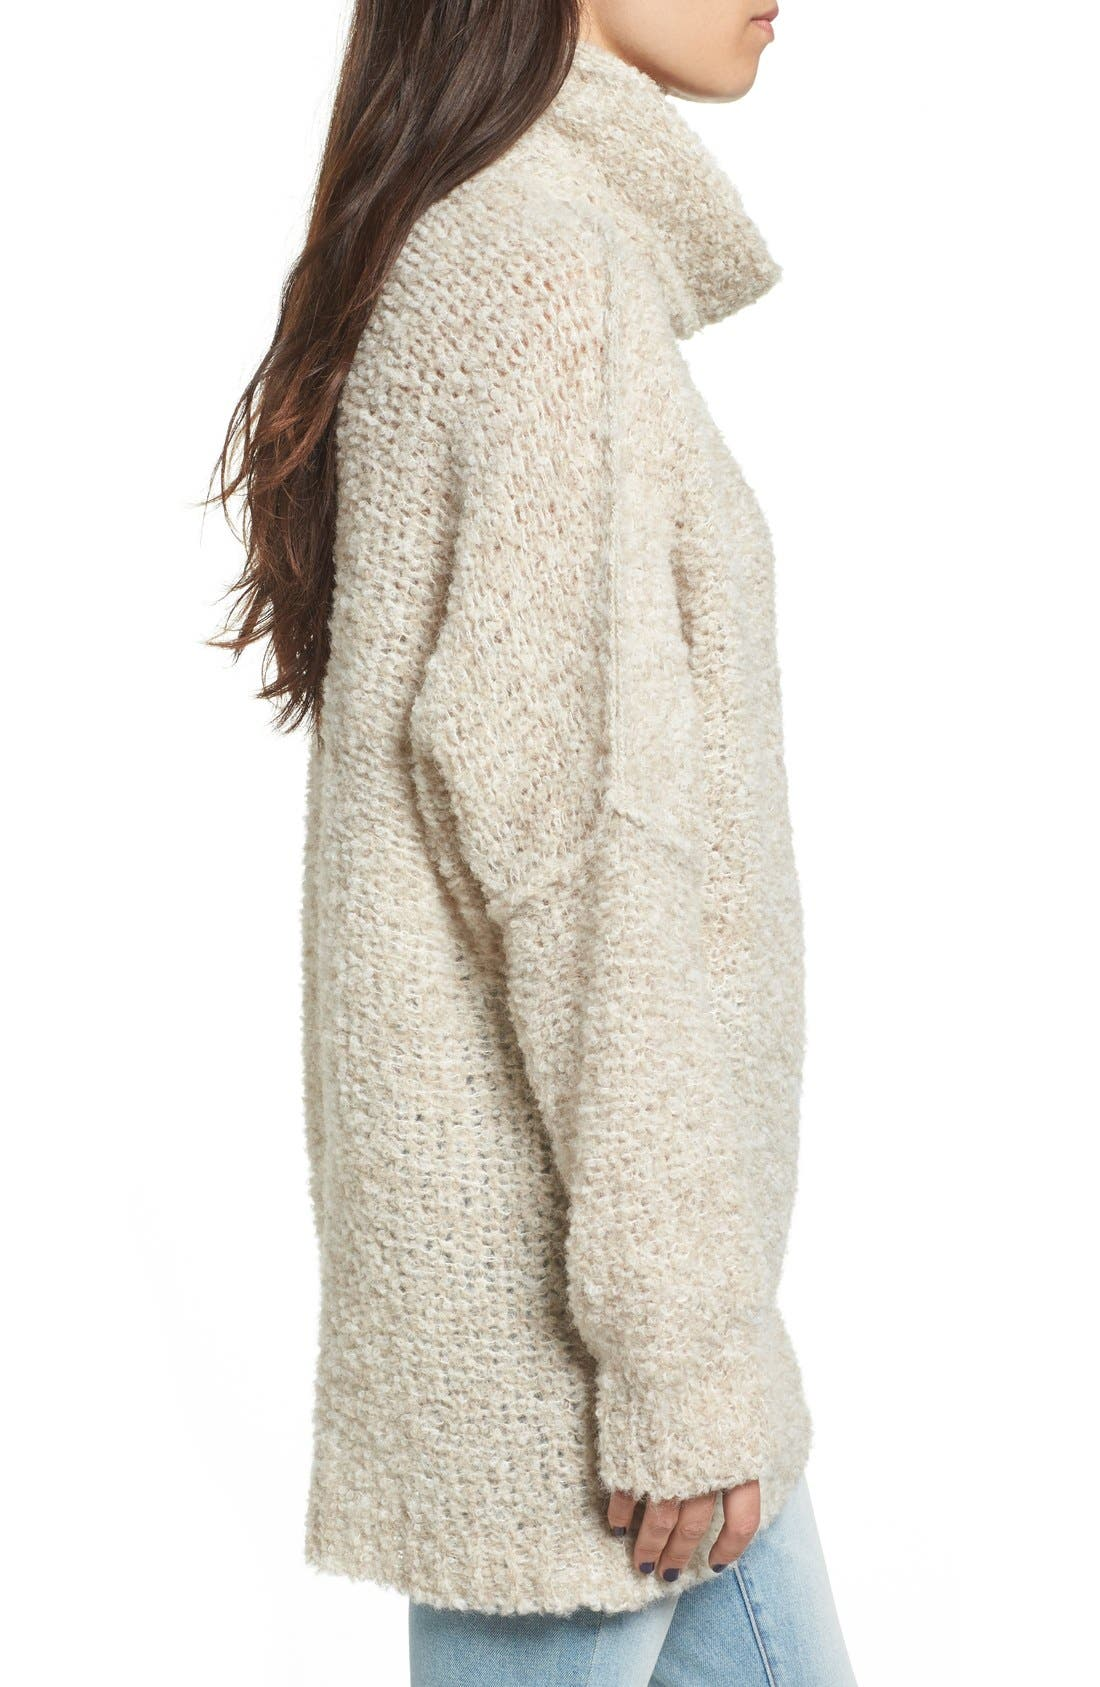 'She's All That' Knit Turtleneck Sweater,                             Alternate thumbnail 15, color,